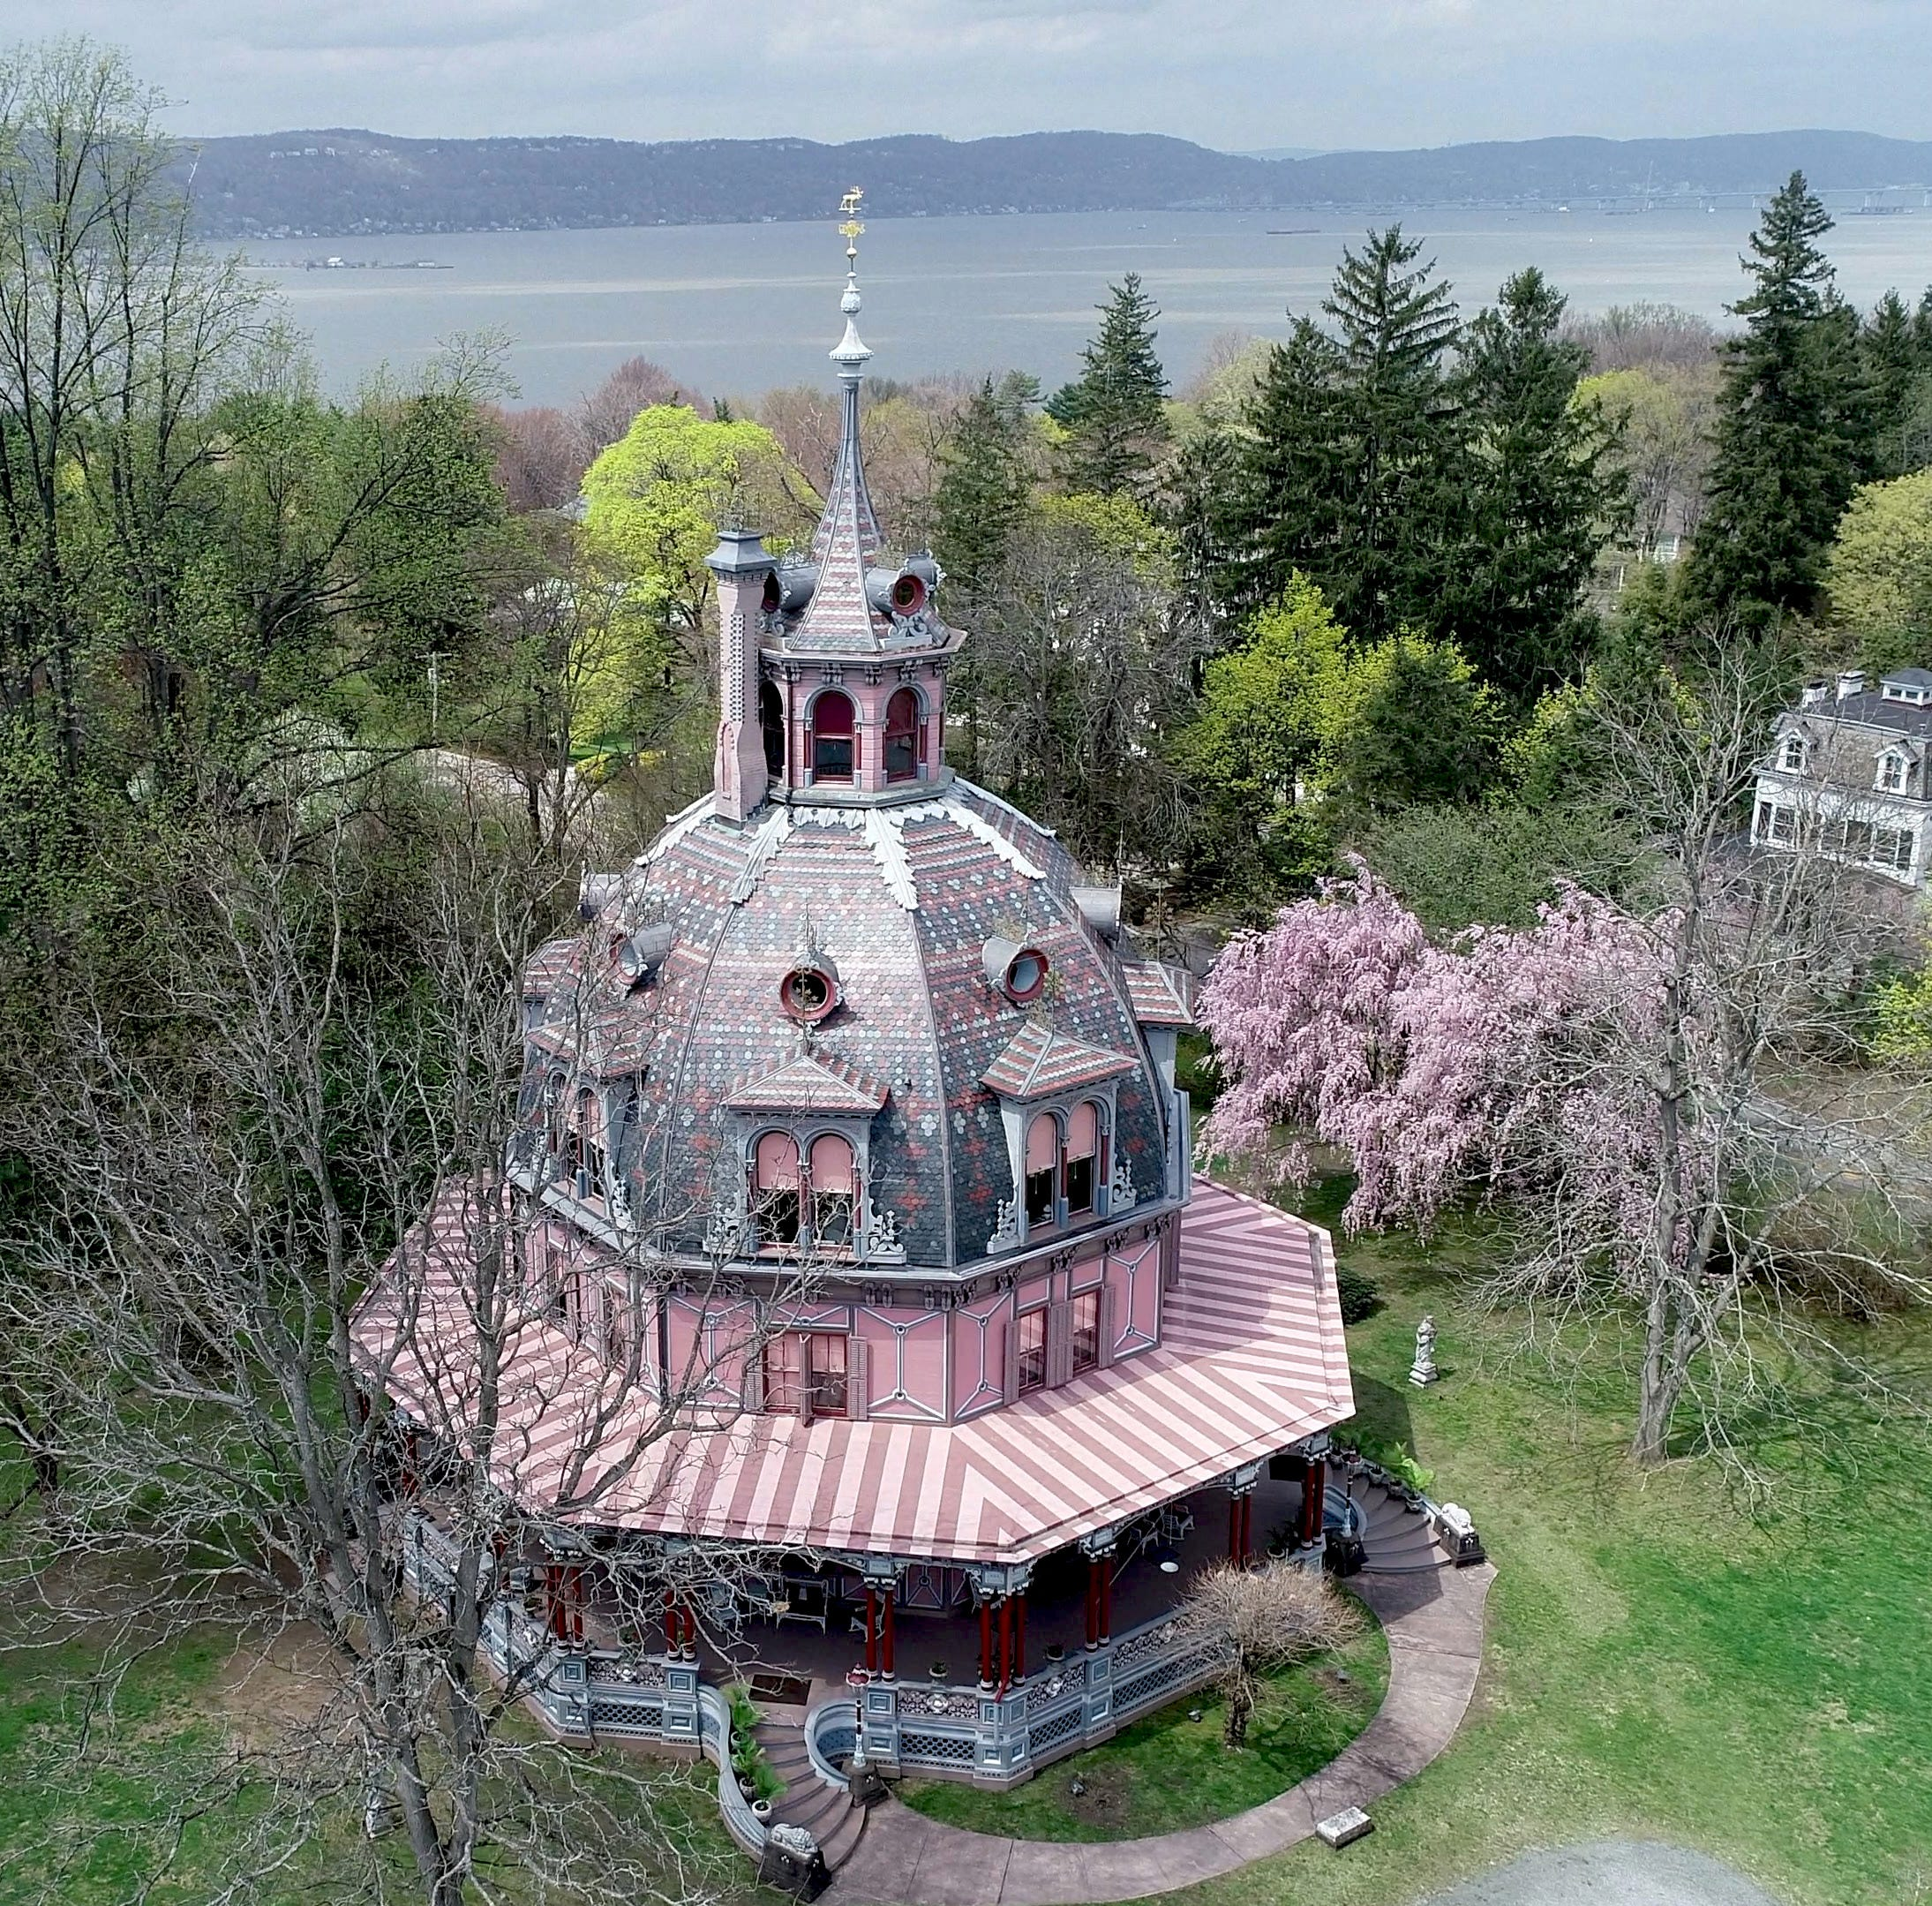 The Armour-Stiner Octagon House in Irvington April 22, 2019.